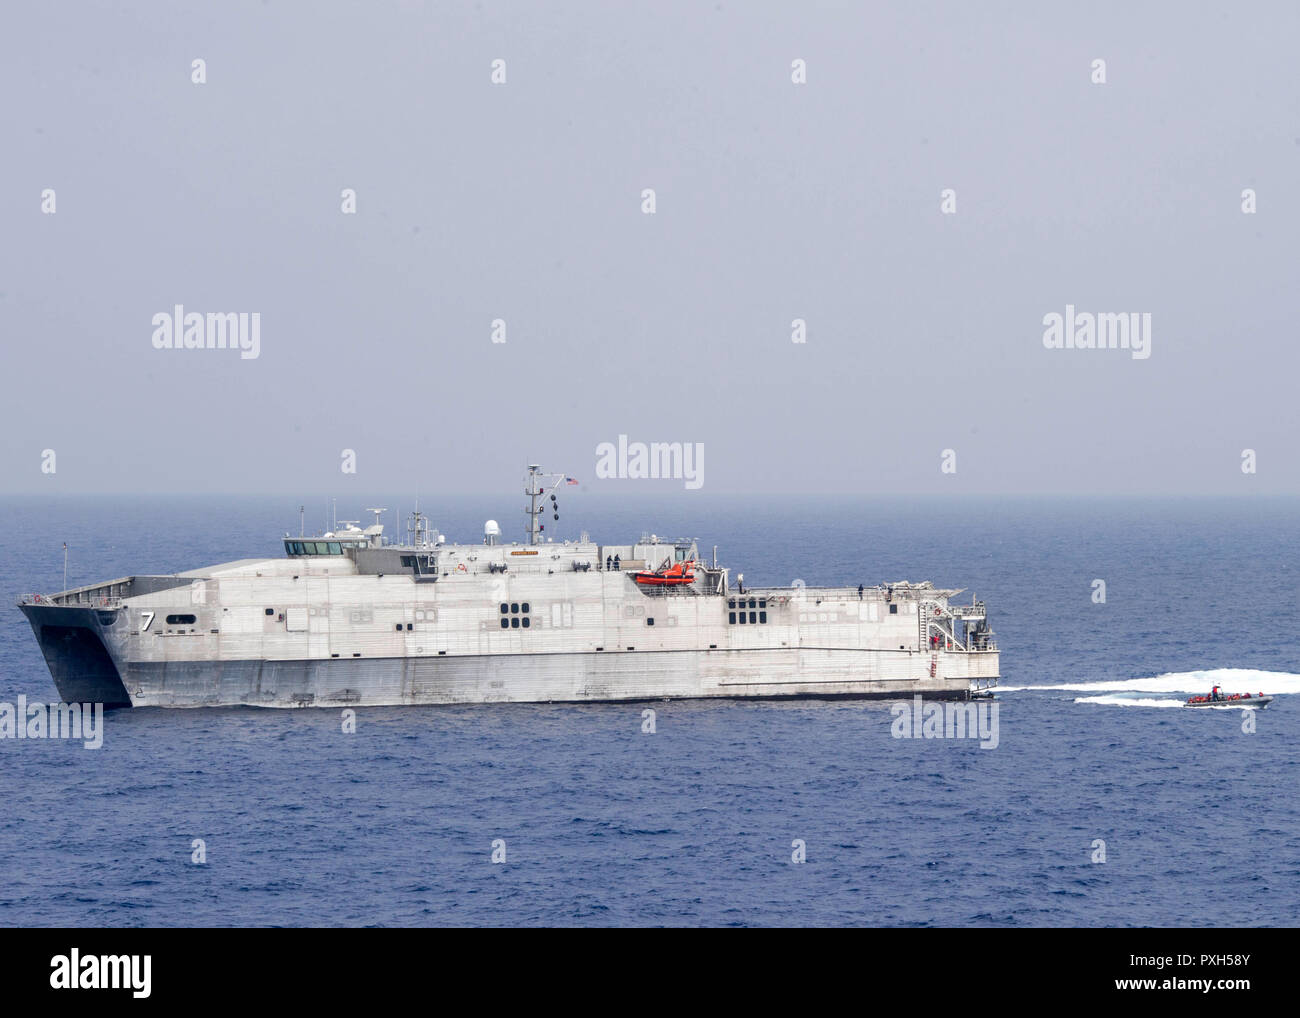 181020-N-PH222-1771 MEDITERRANEAN SEA (Oct. 20, 2018) The Spearhead-class expeditionary fast transport ship USNS Carson City (T-EPF-7) conducts small boat operations with a rigid hull inflatable boat from the San Antonio-class amphibious transport dock ship USS Anchorage (LPD 23) in the Mediterranean Sea, Oct. 20, 2018. Anchorage and embarked 13th Marine Expeditionary Unit are deployed to the U.S. 6th Fleet area of operations as a crisis response force in support of regional partners as well as to promote U.S. national security interests in Europe and Africa. (U.S. Navy photo by Mass Communica - Stock Image